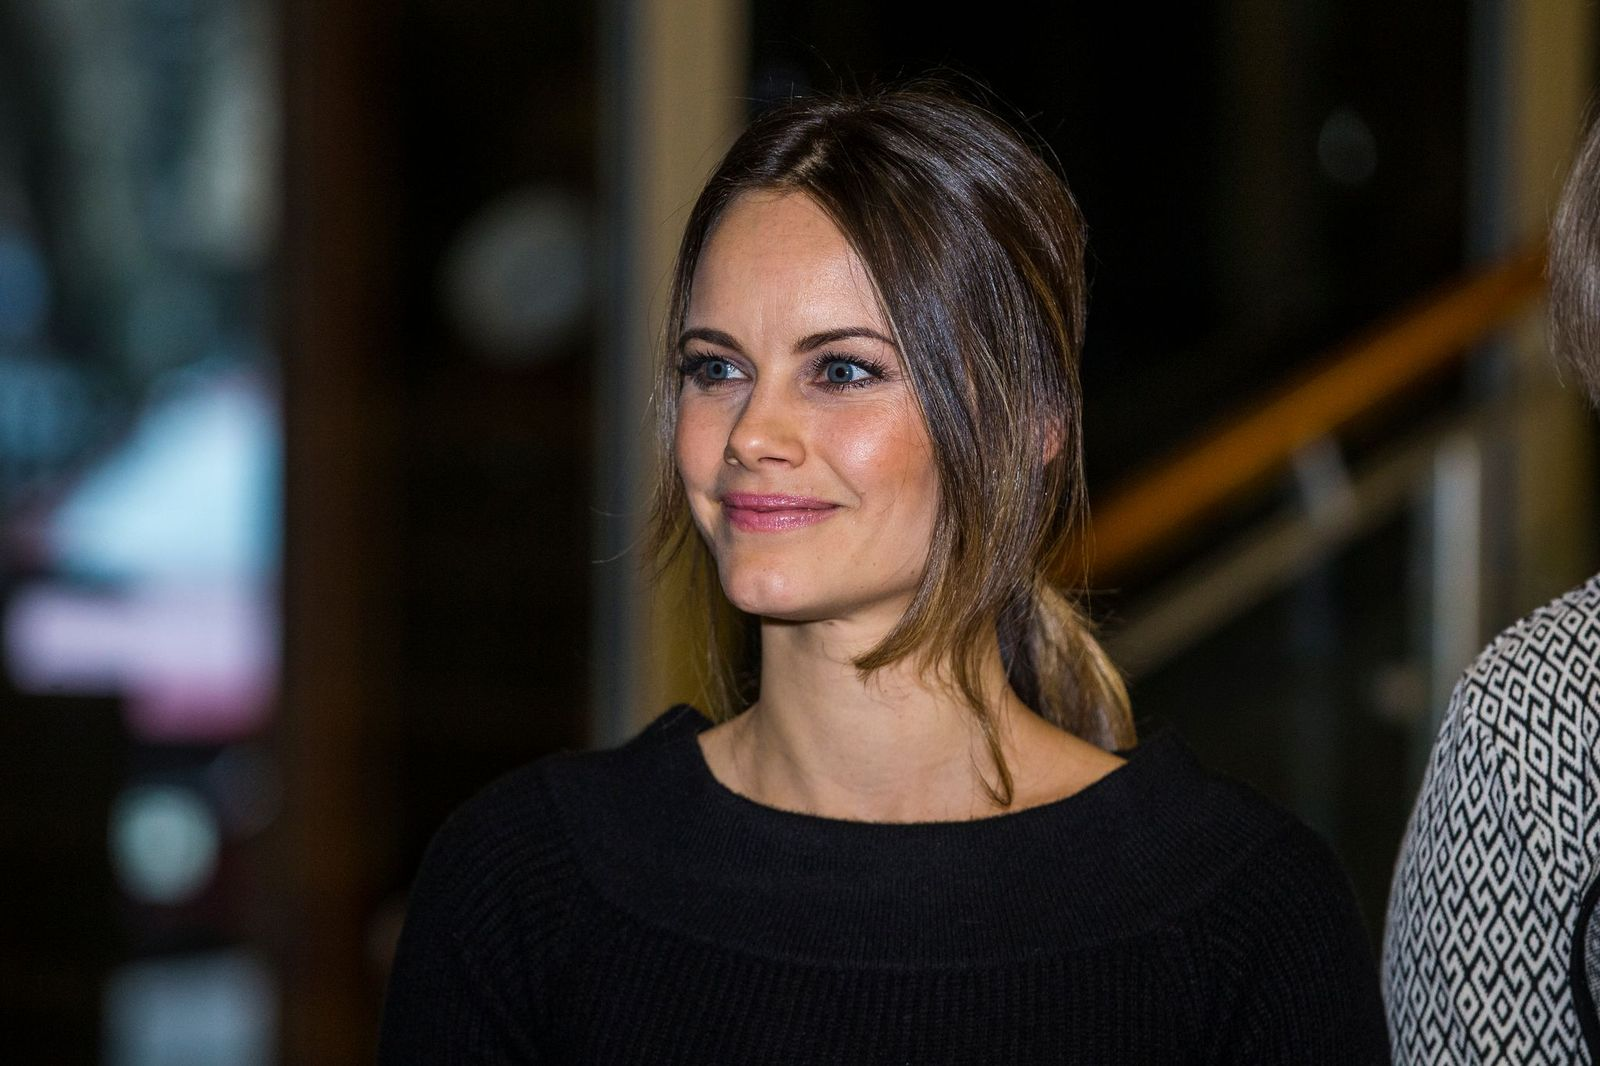 Princess Sofia of Sweden at the Stockholm City Conference Center on November 27, 2019 | Getty Images